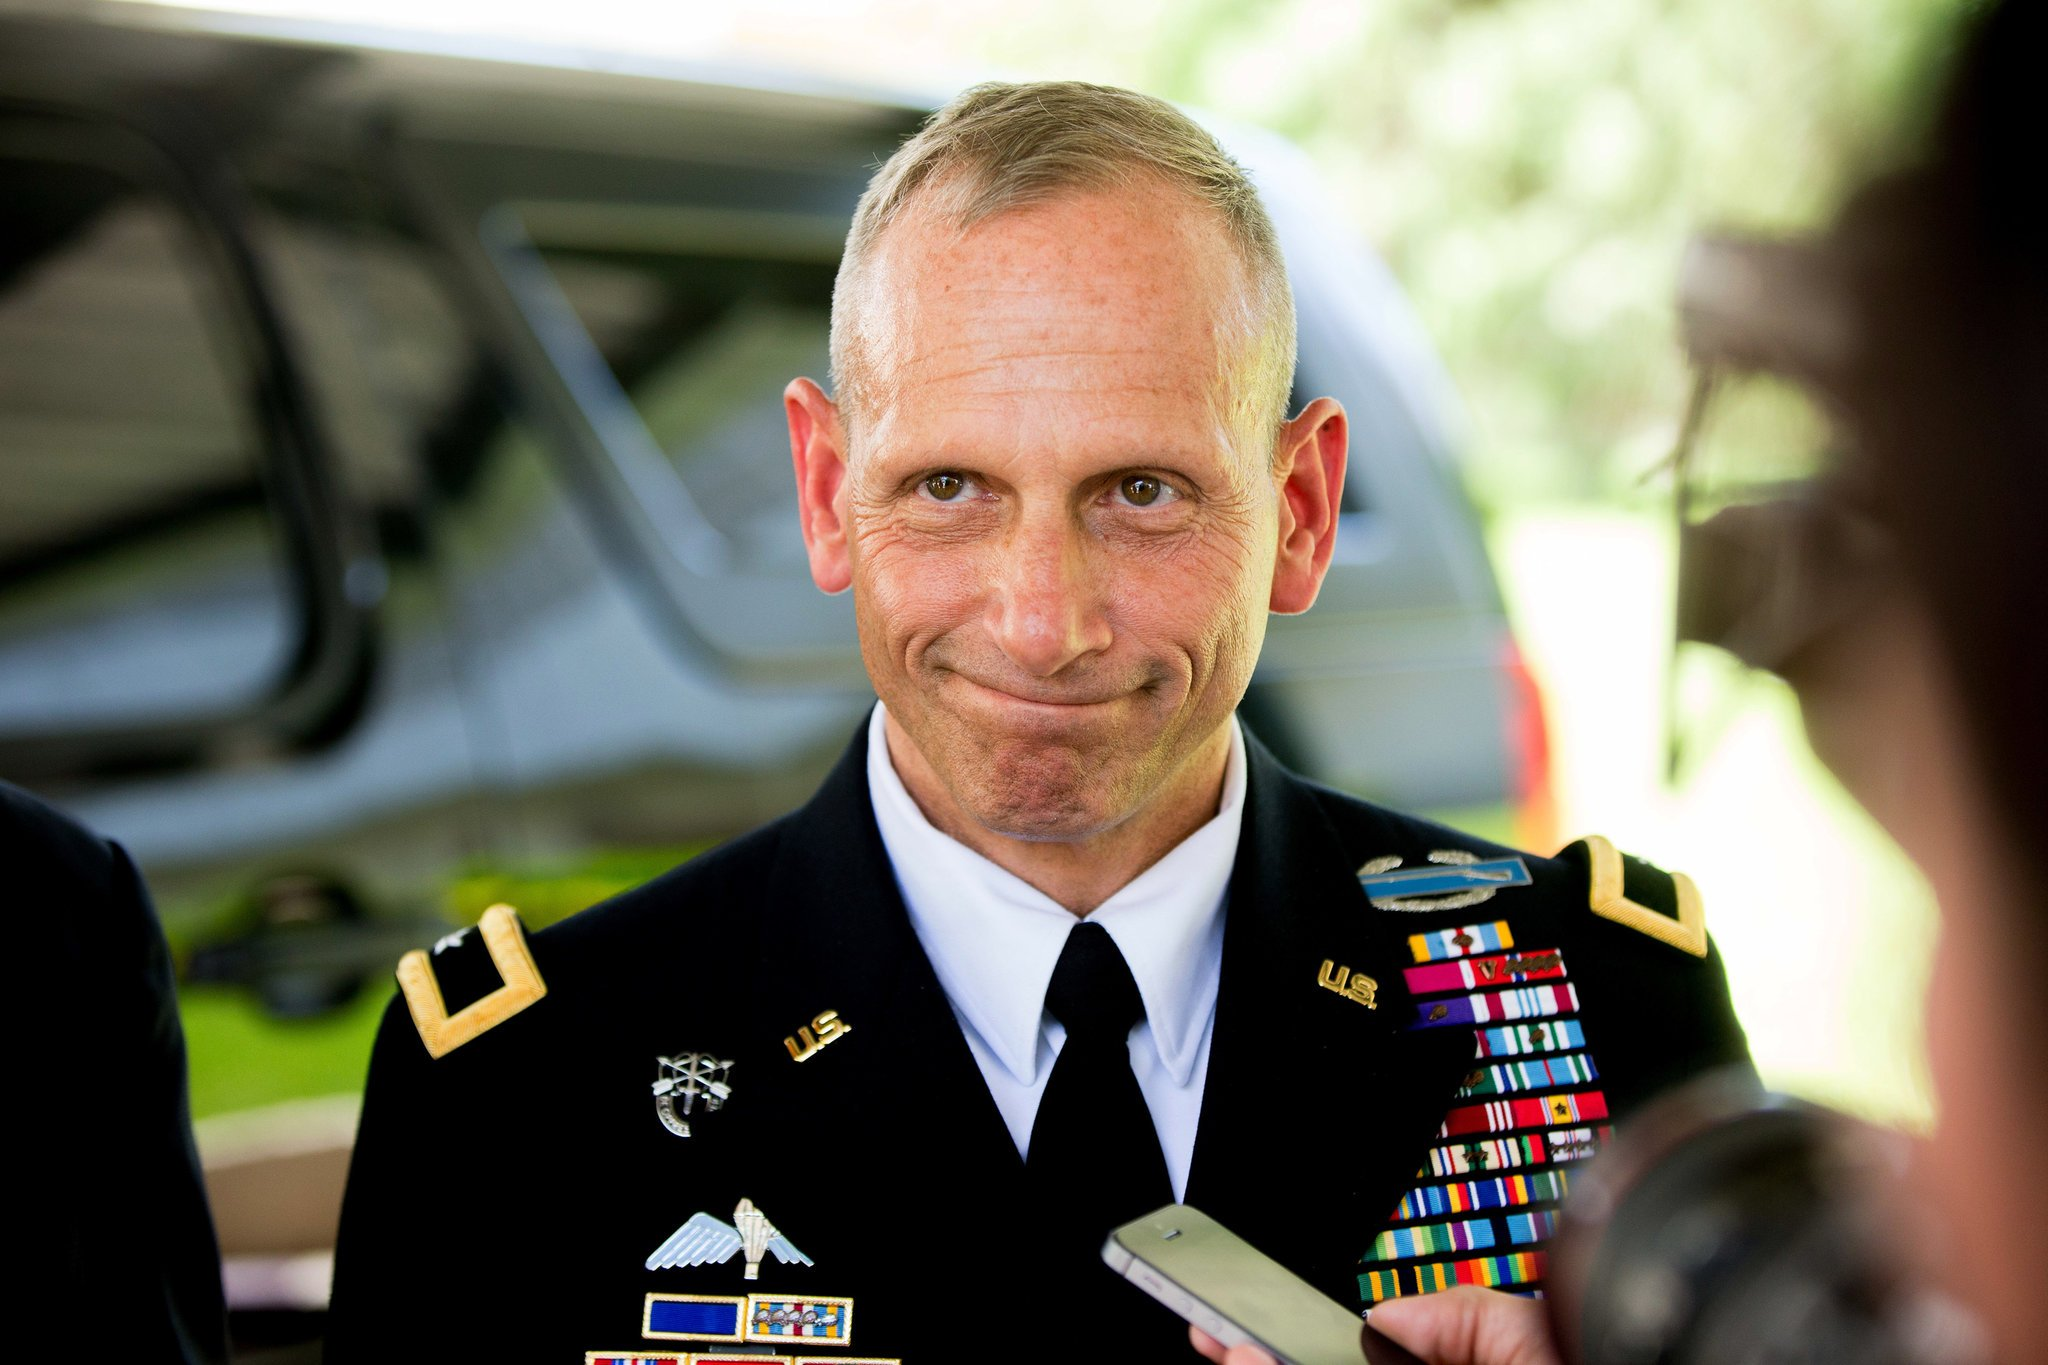 Brig. Gen. Donald C. Bolduc   During his 32 year career, Brig. Gen. Bolduc spent more than 80 months deployed in support of military operations around the world. Bolduc is one of the few military officers, and the only active duty general officer on record, to openly discuss his own struggles with post-traumatic stress and traumatic brain injury.  {photo credit: Andrew Harnik/AP}   READ MORE:   A General's New Mission: Leading a Charge Against PTSD